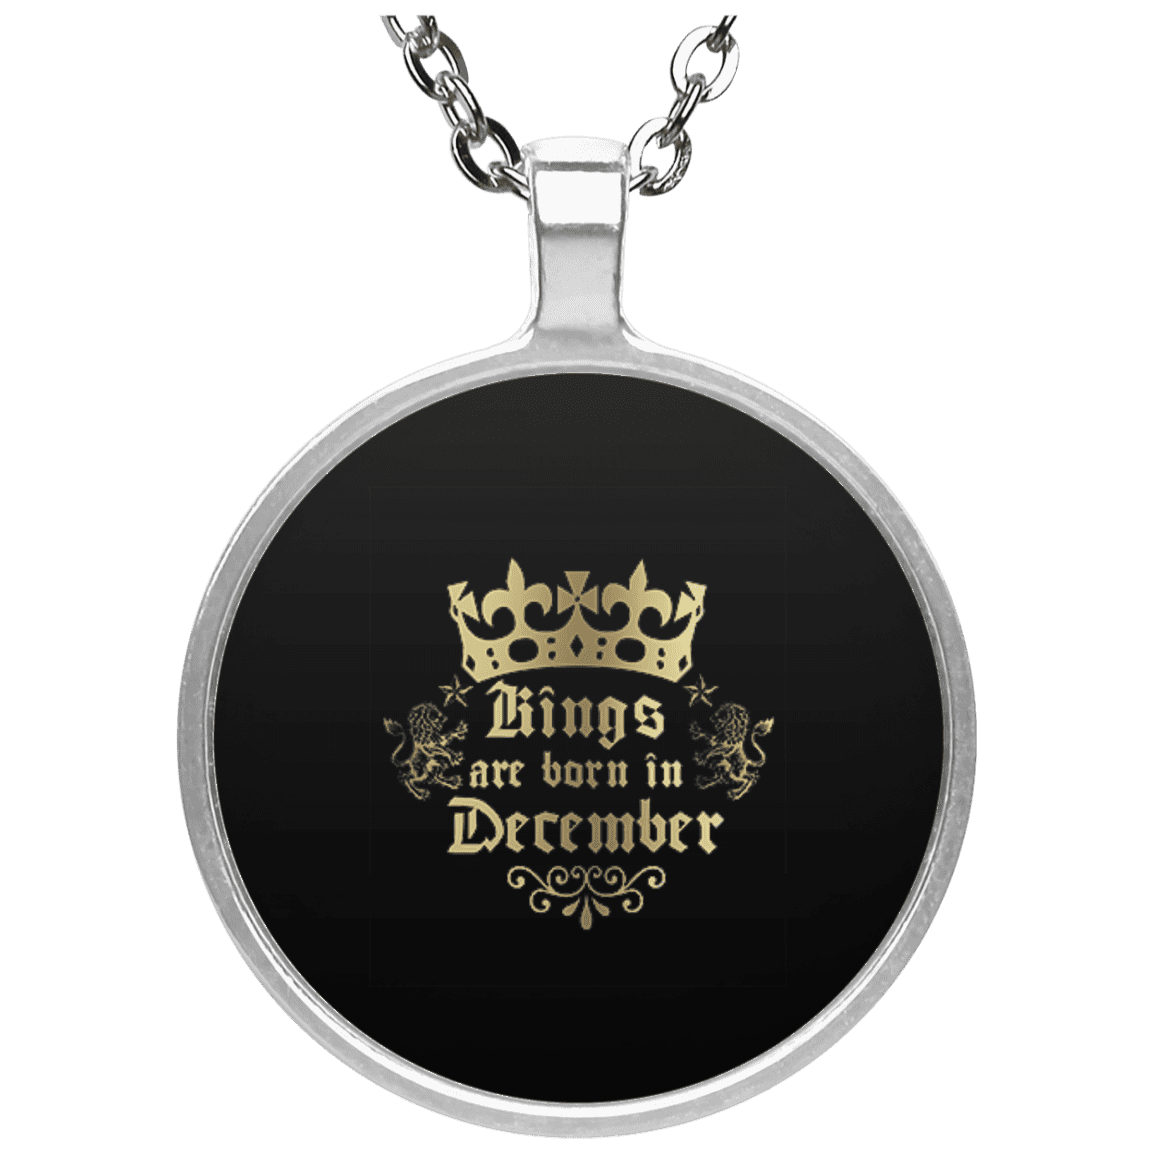 Limited Edition King Are Born In December Circle Necklace